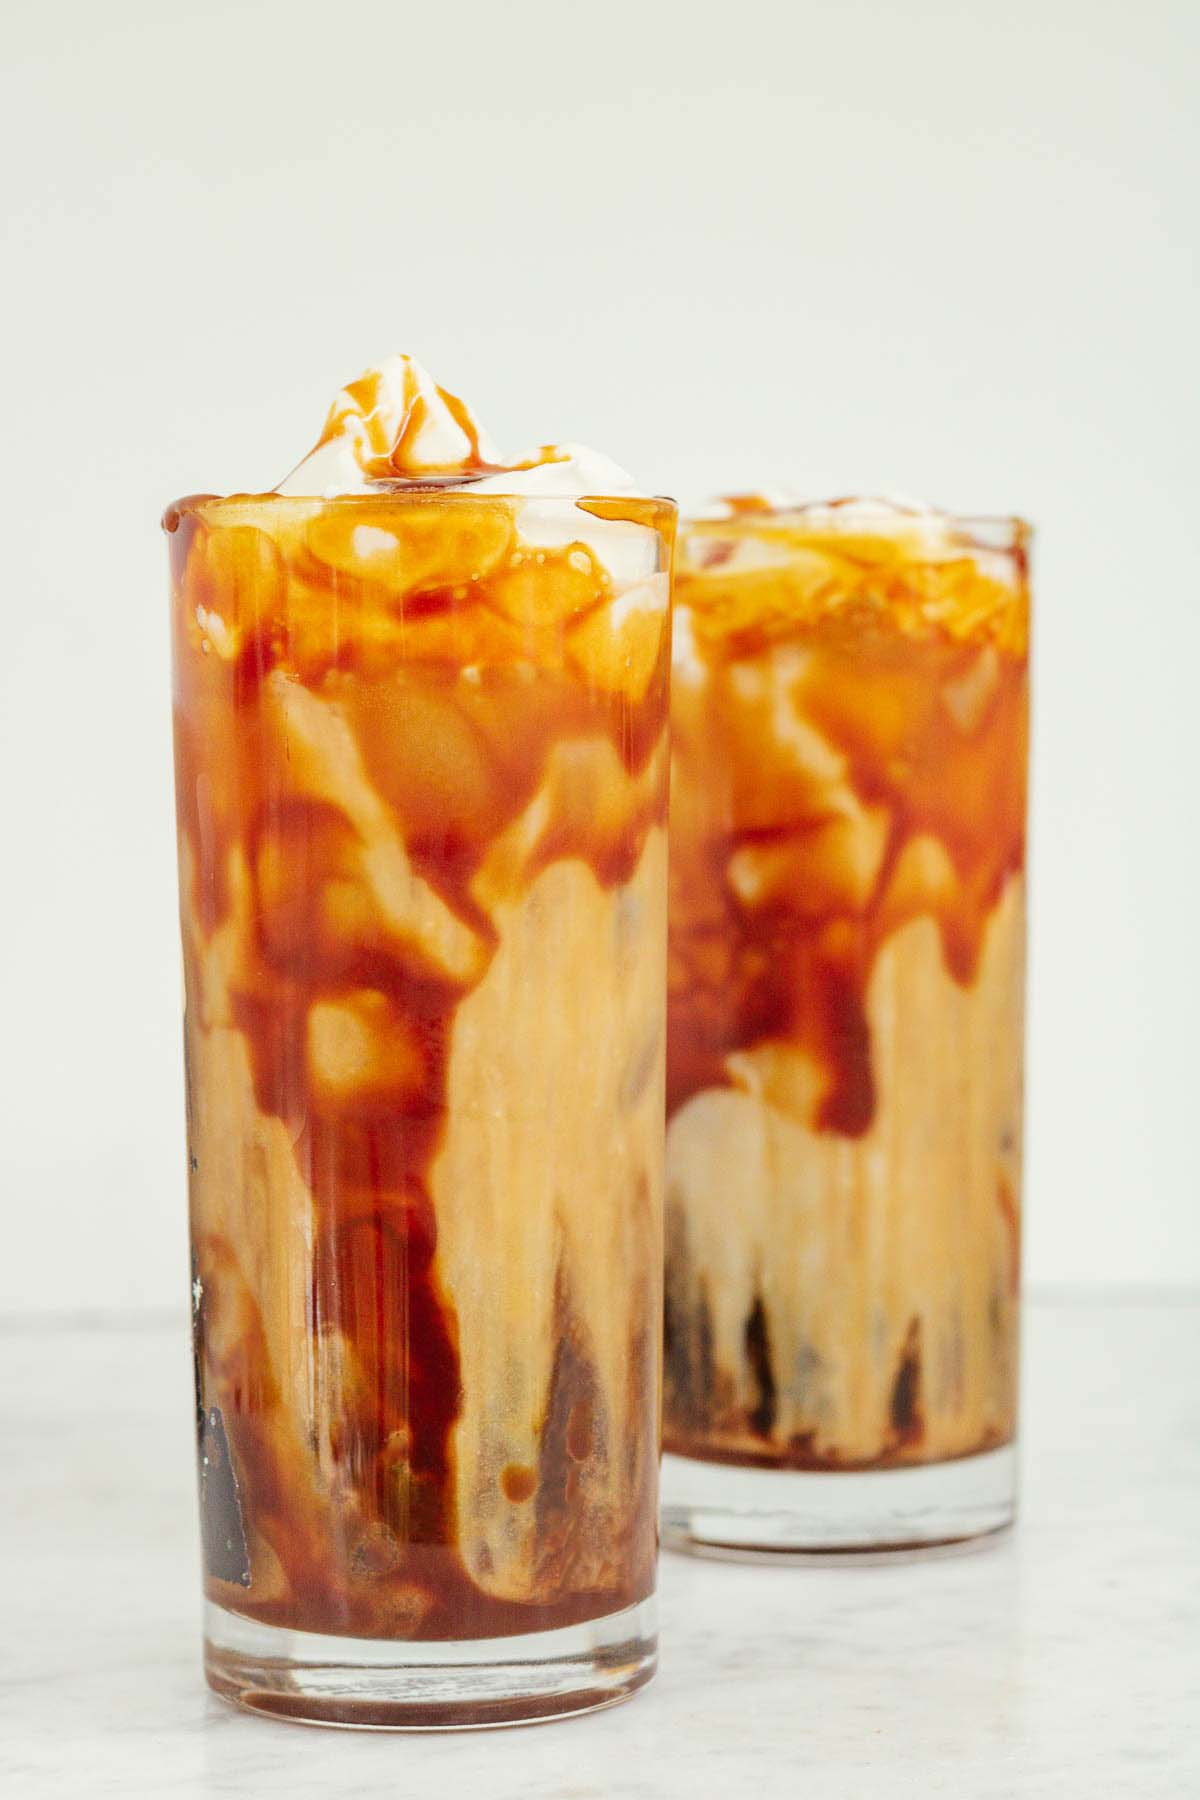 iced caramel latte with whipped cream and caramel sauce on top